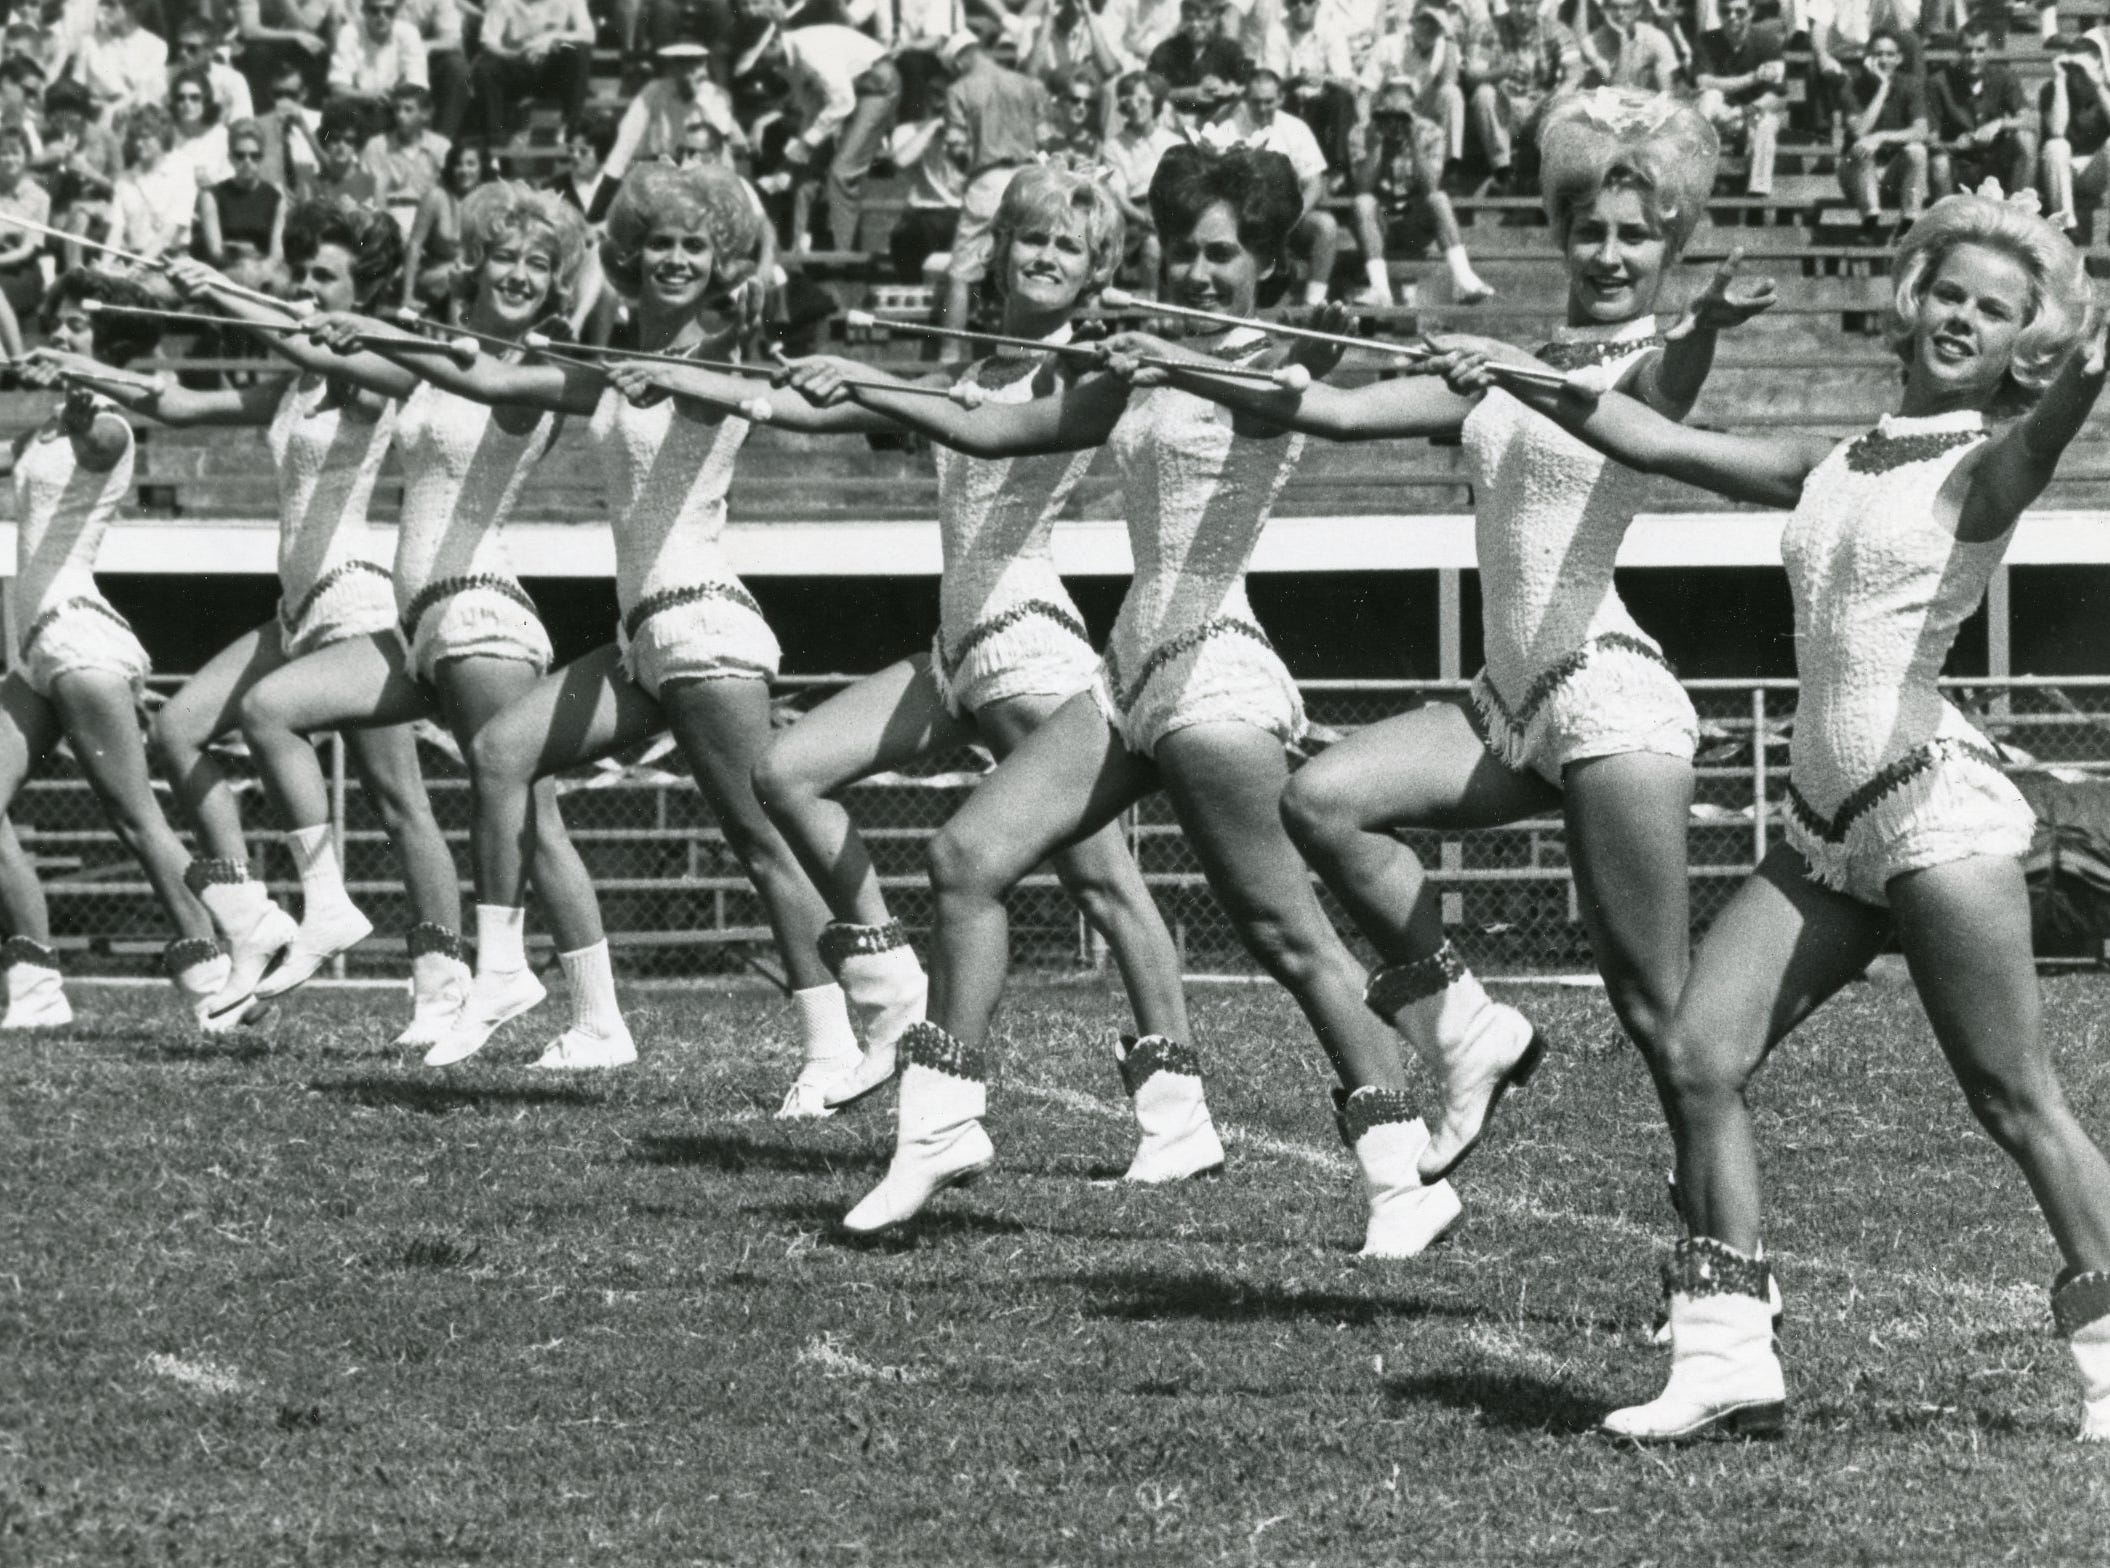 The 1963 UT majorettes perform on the field with the band.